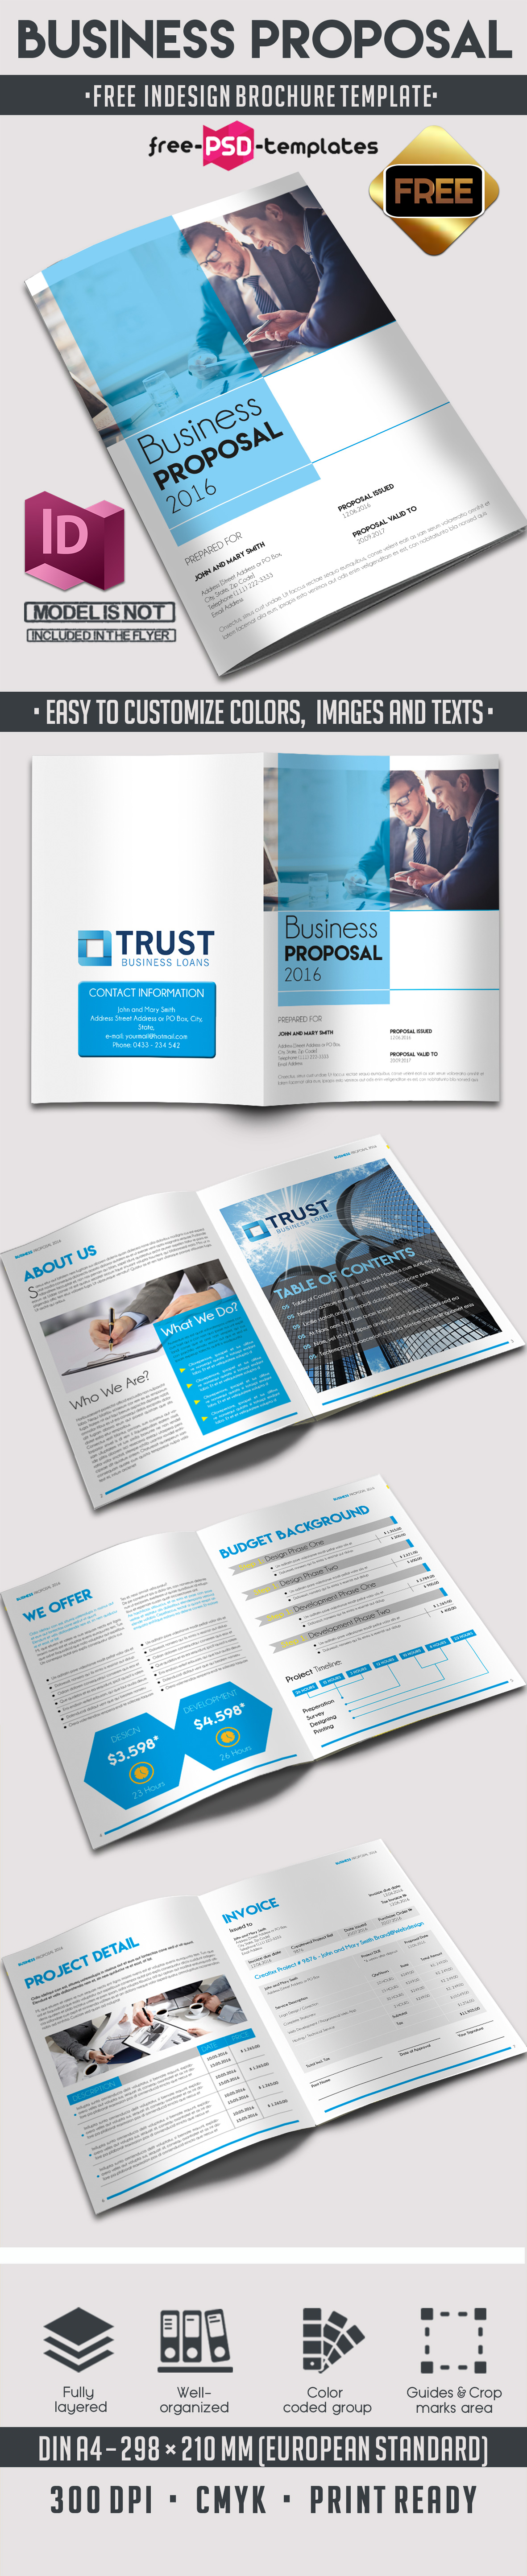 brochure templates free online - free business proposal brochure 8 pages a4 free psd